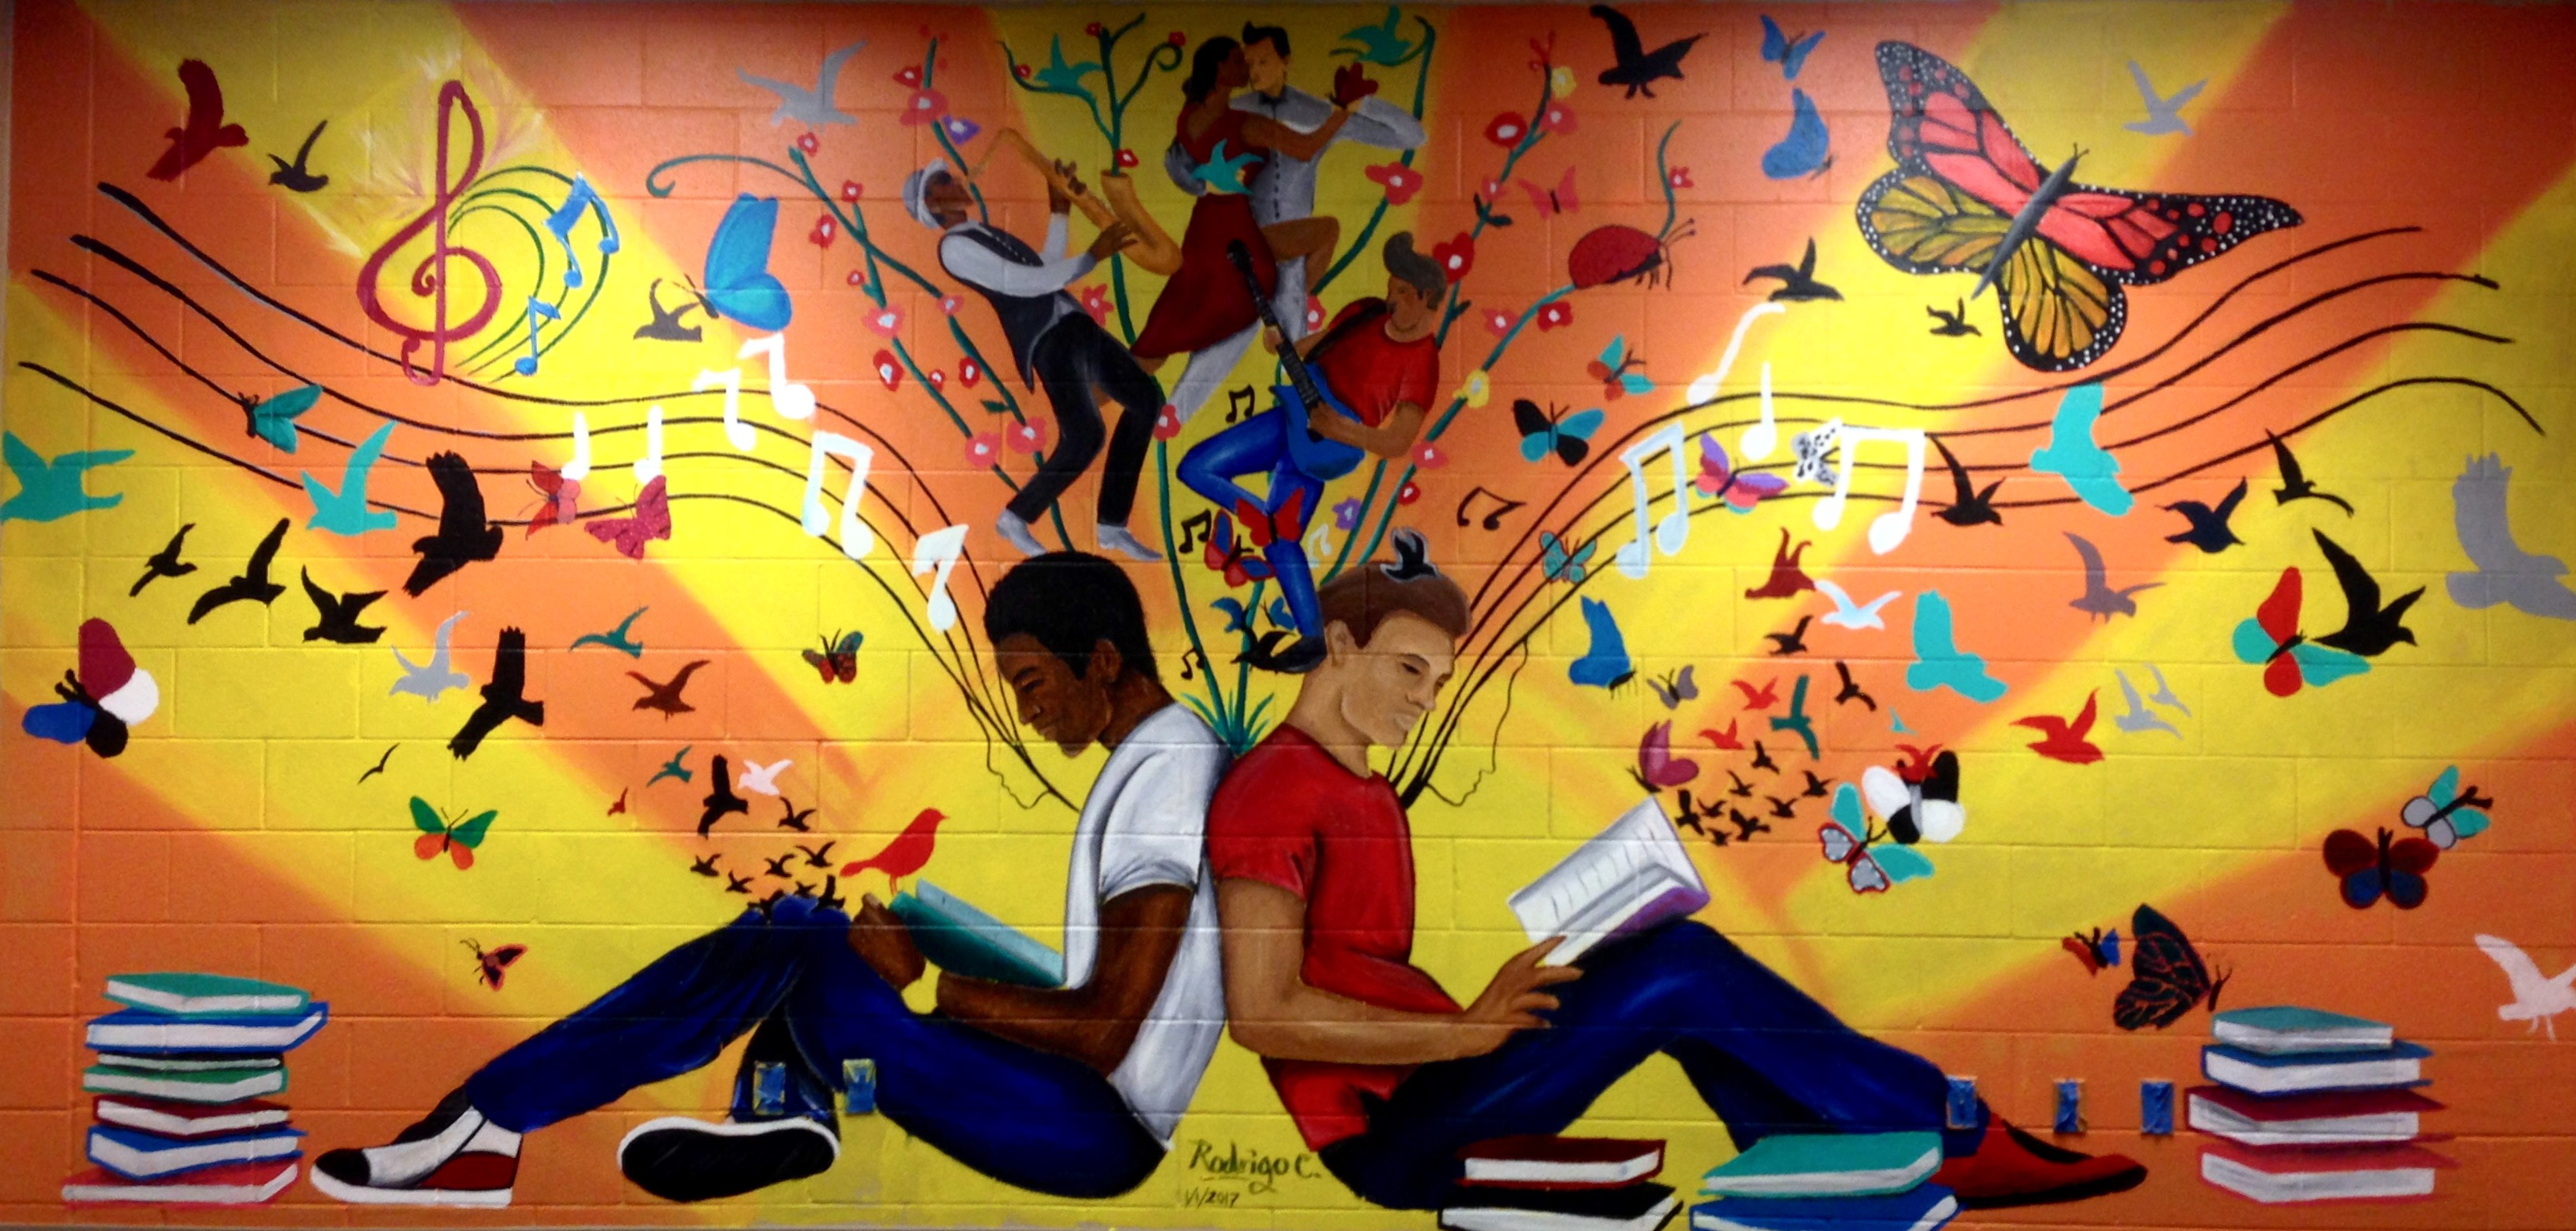 "Madison Public Library's Bubbler Making Justice ""Sunny Horizons"" mural residency with Rodrigo Carapia"